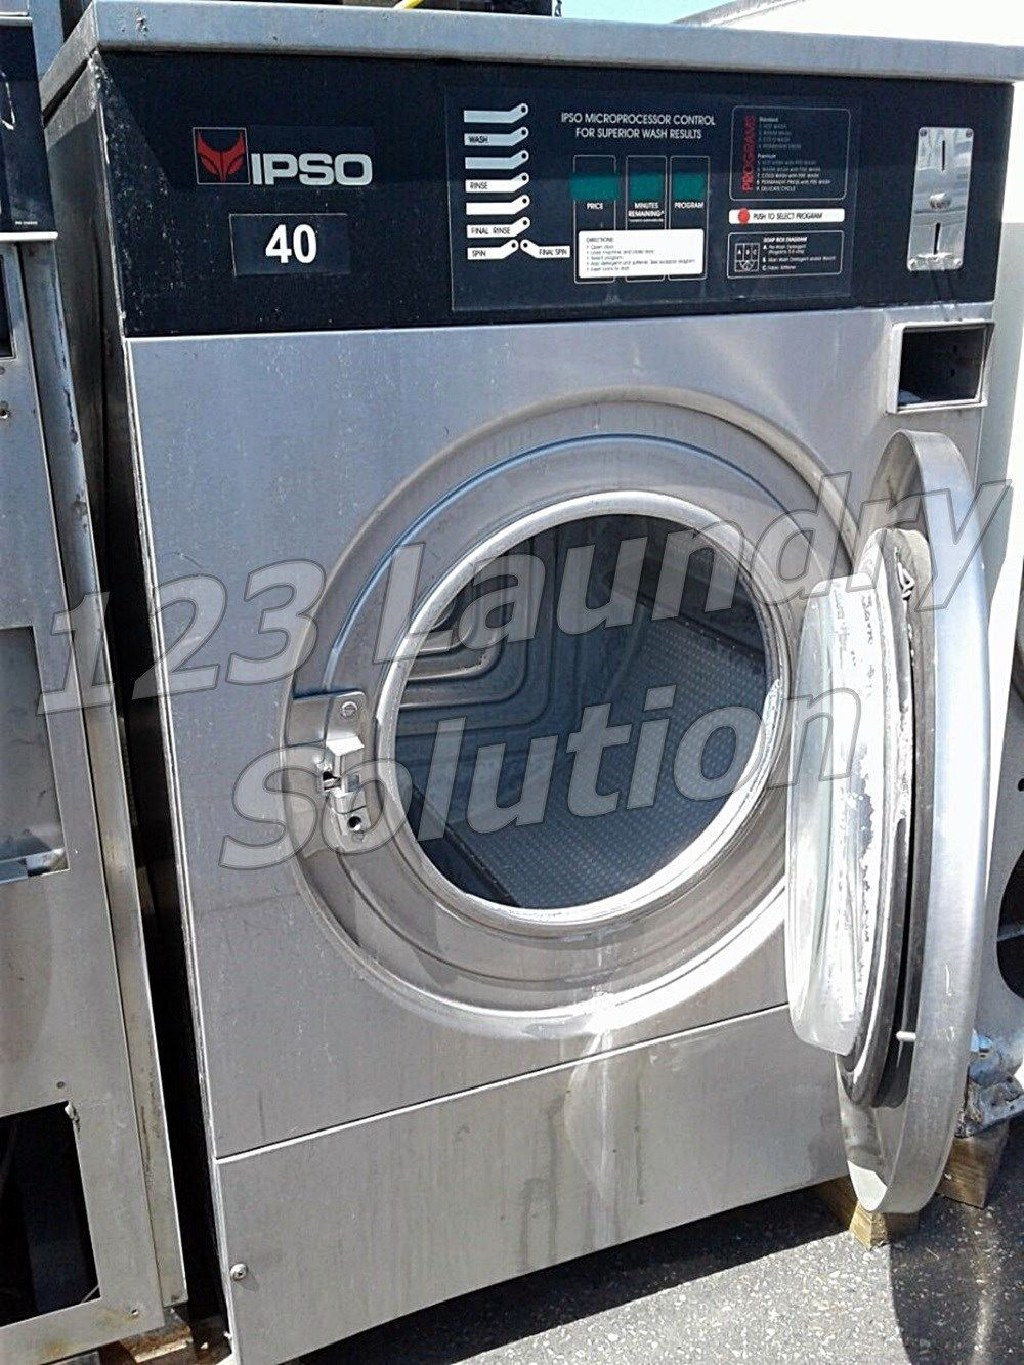 Fair Condition IPSO Front Load Washer 40LB WE181C 1PH 220V Stainless Steel Finish Used